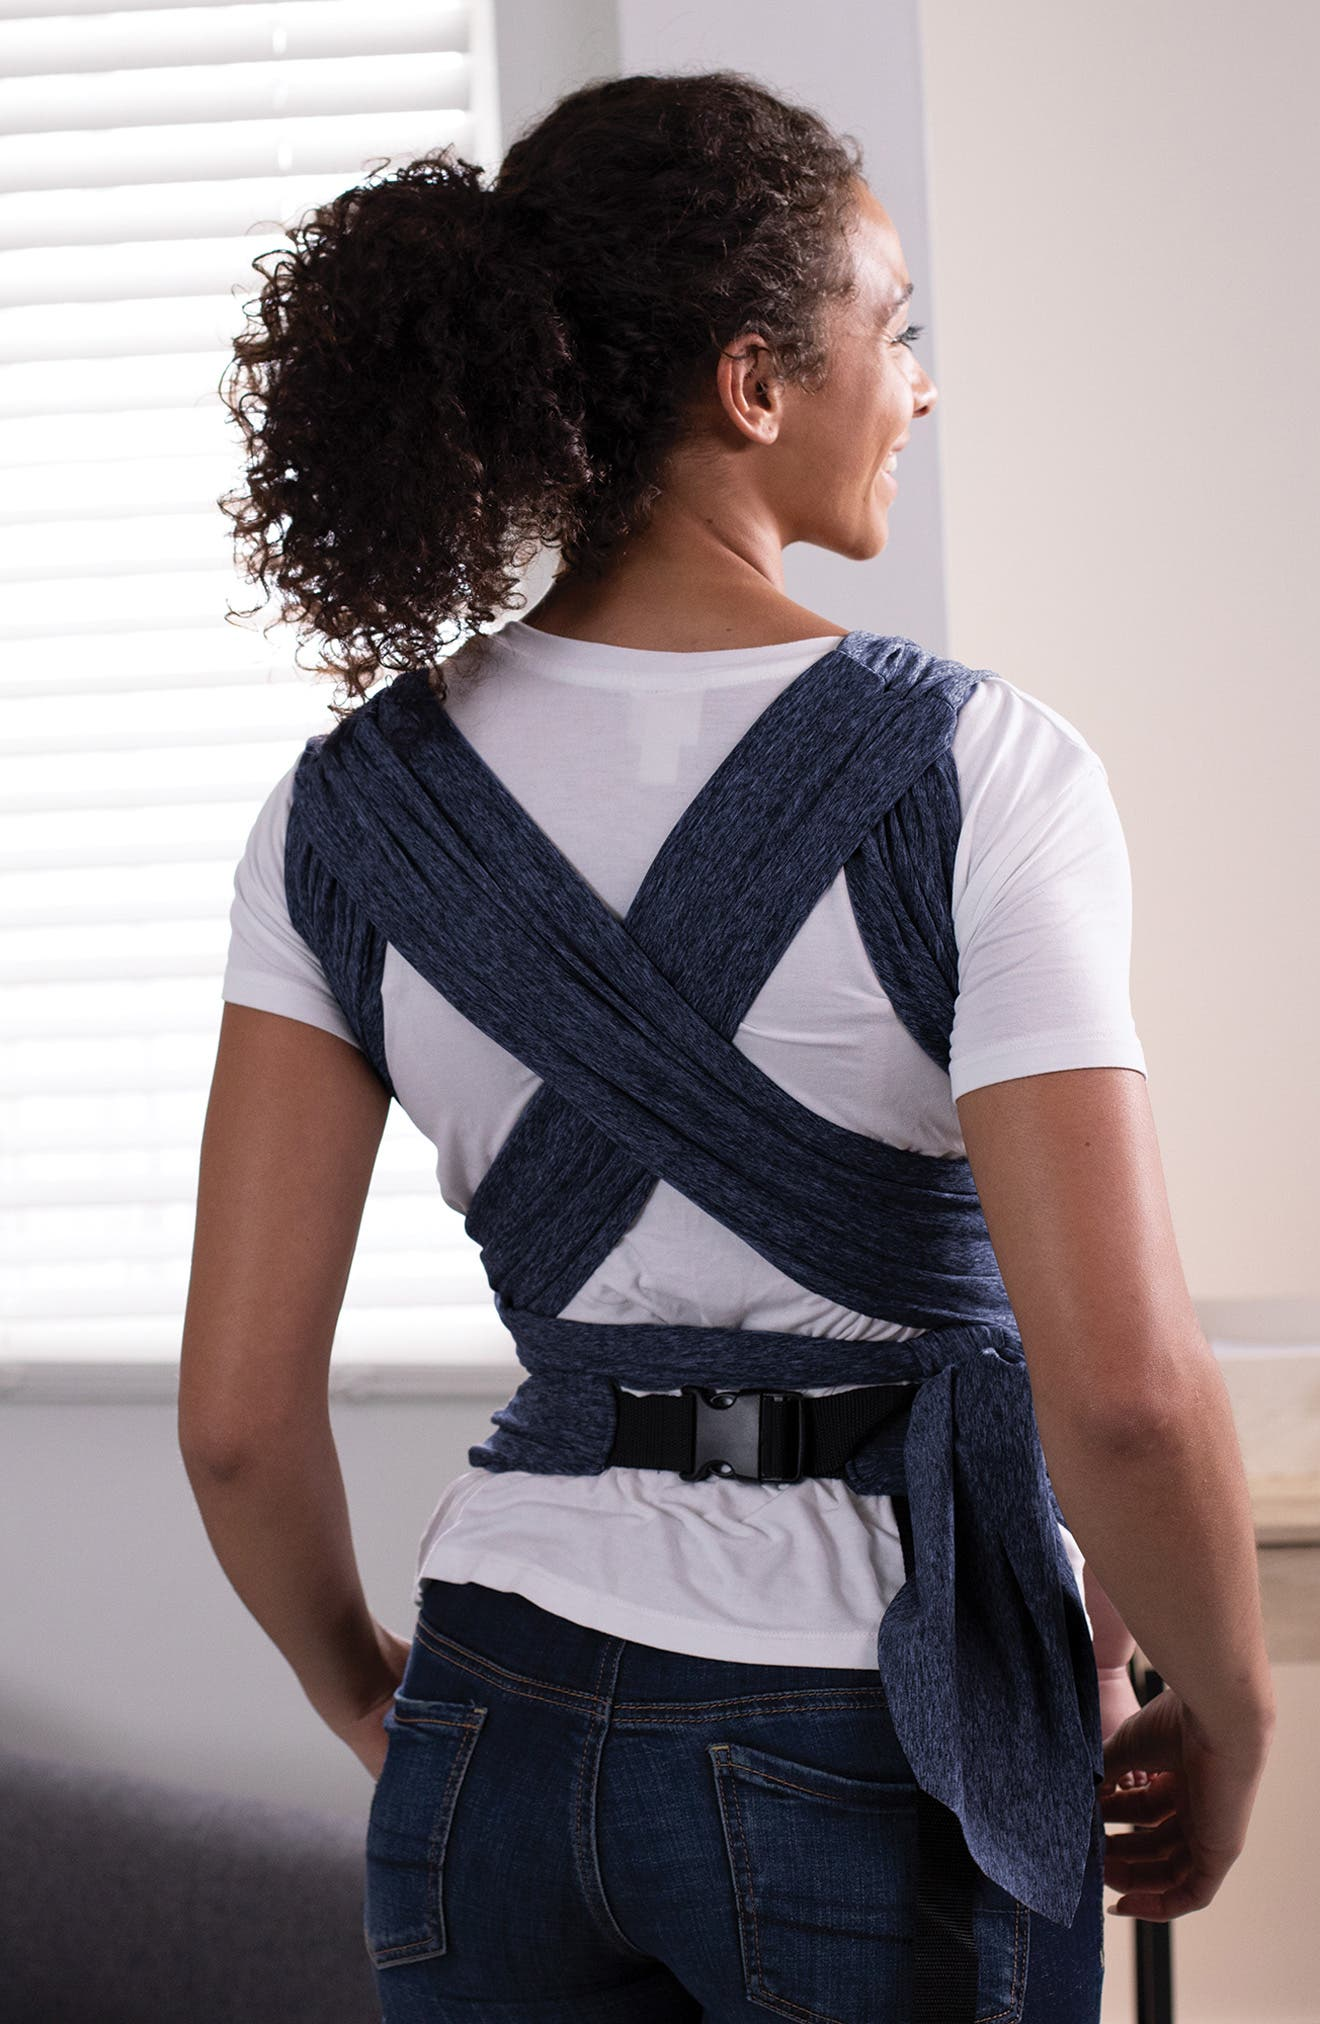 ComfyFit Baby Carrier,                             Alternate thumbnail 5, color,                             MIDNIGHT BLUE